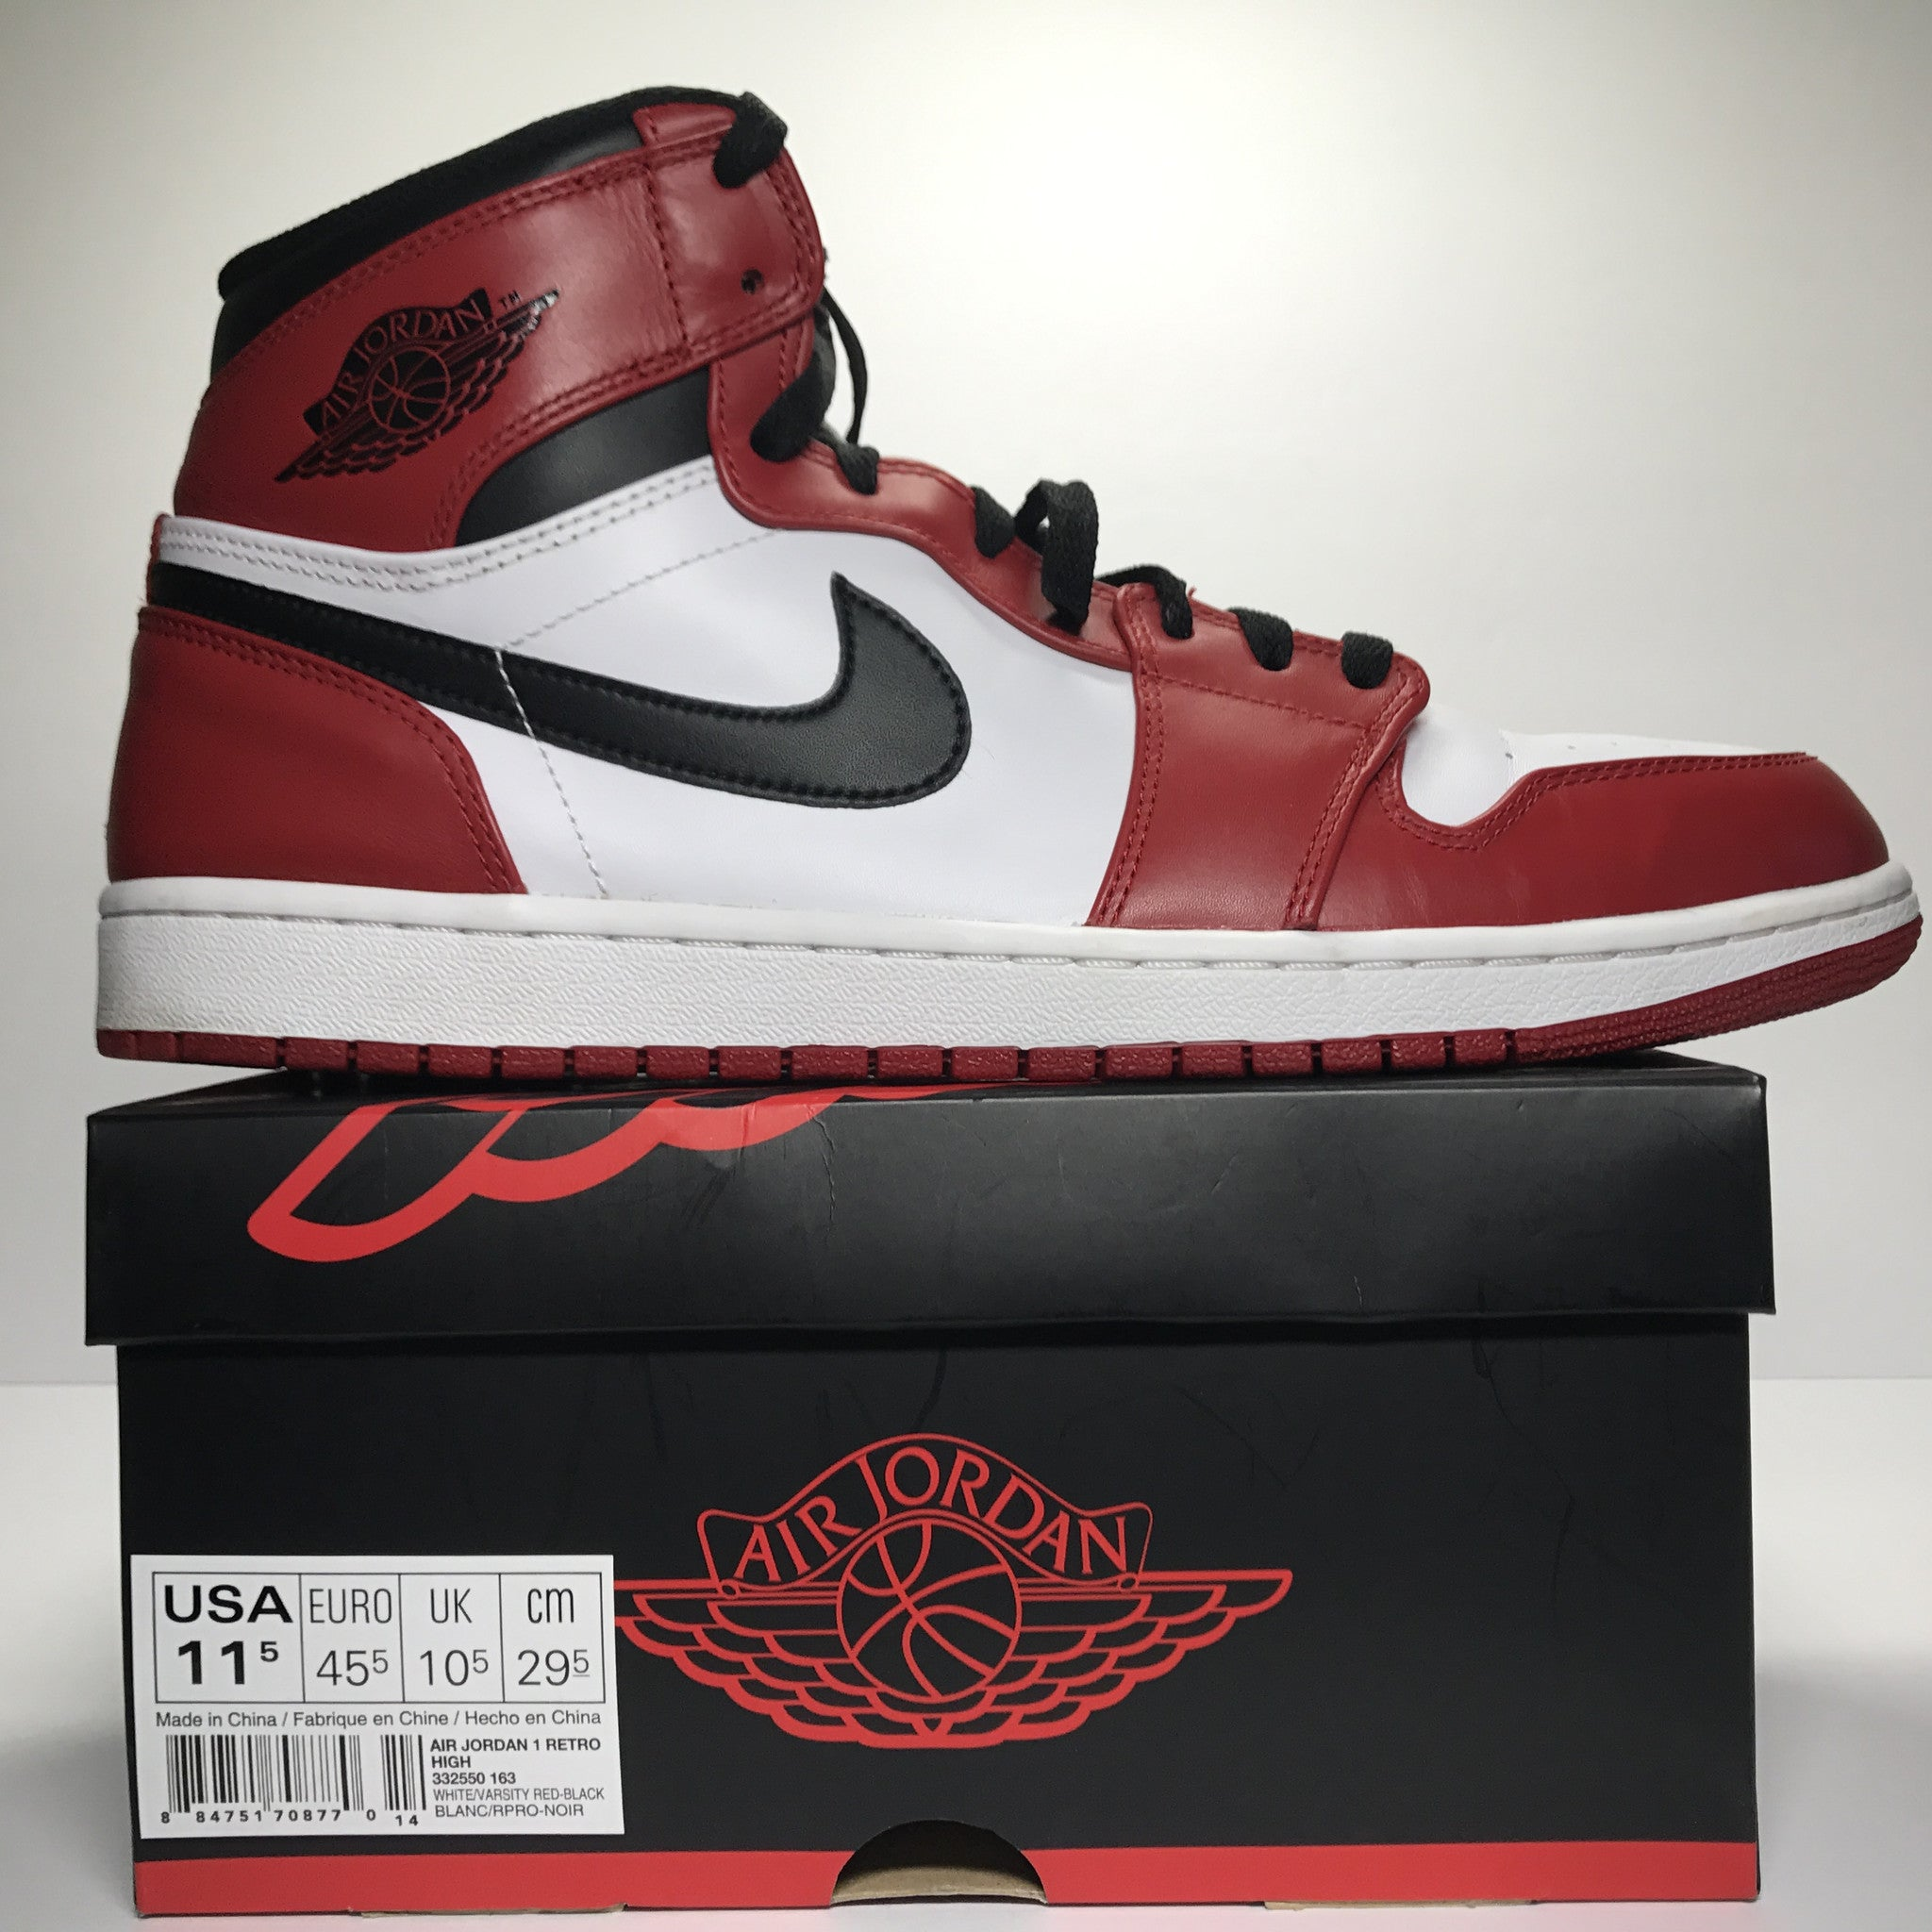 Nike Air Jordan 1 I Retro High OG Chicago 2013 Size 11.5